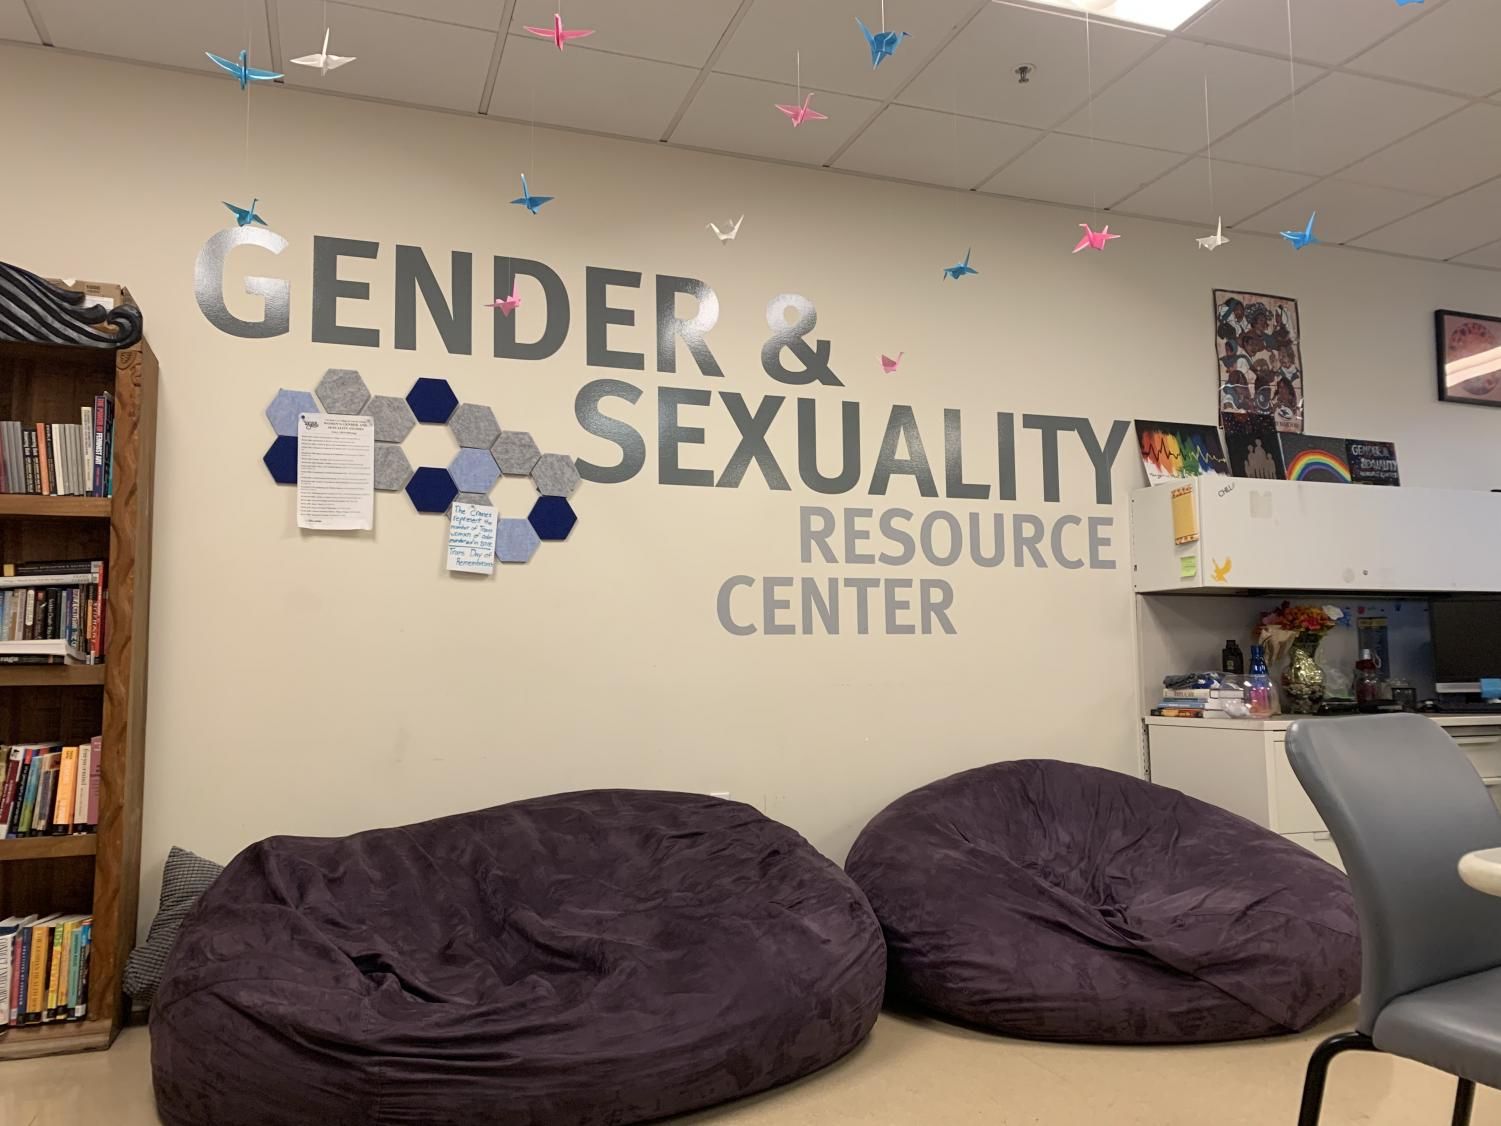 The Gender & Sexuality Resource Center is located on the 2nd floor of the USU.